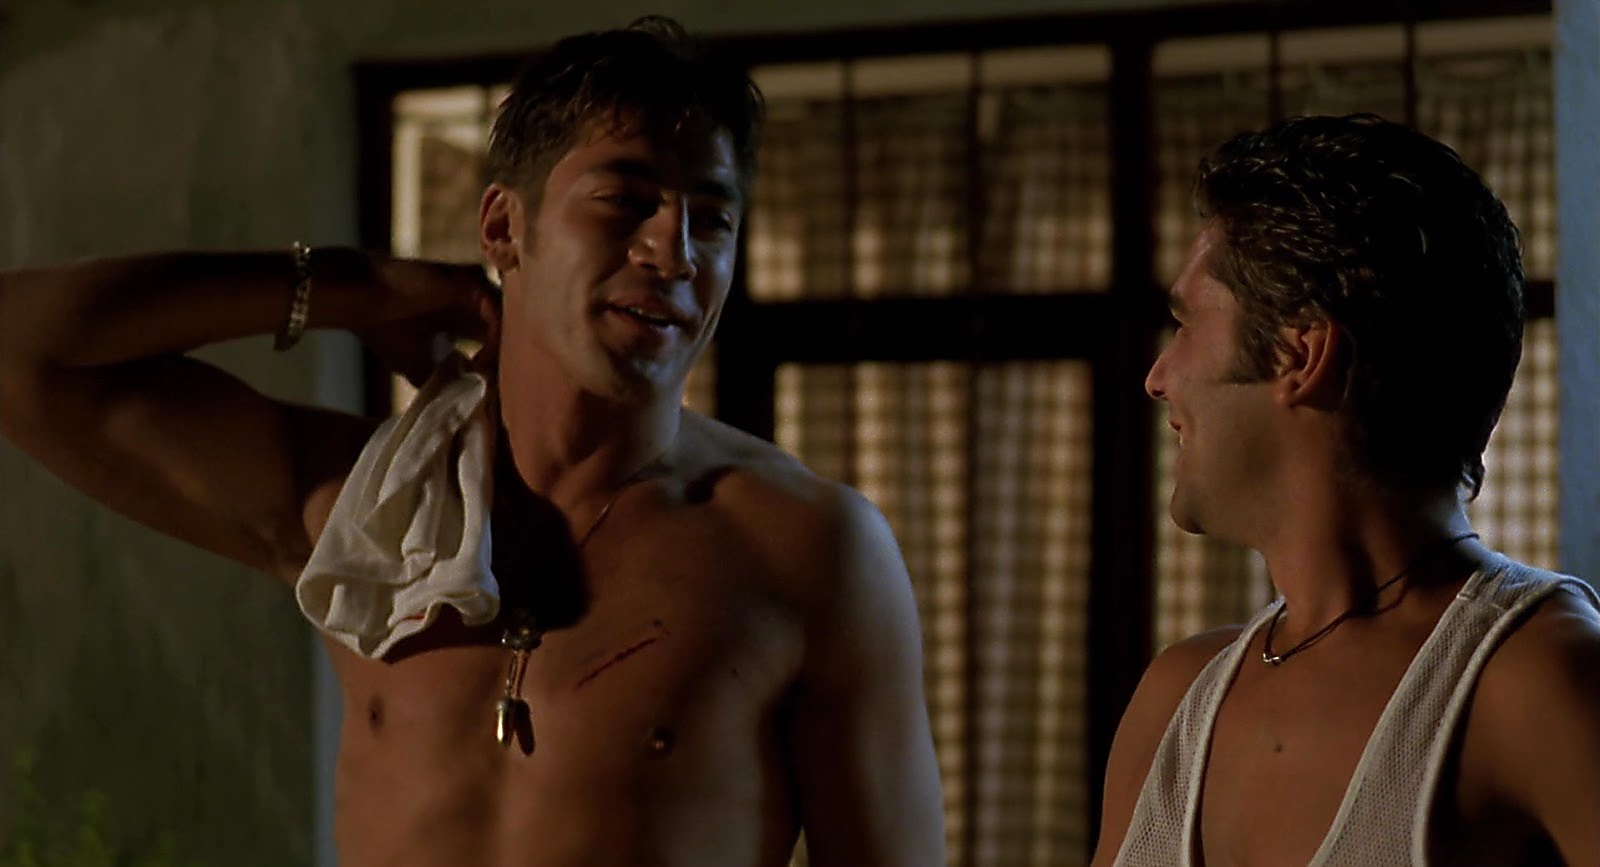 Javier Bardem sexy shirtless scene May 10, 2019, 7am